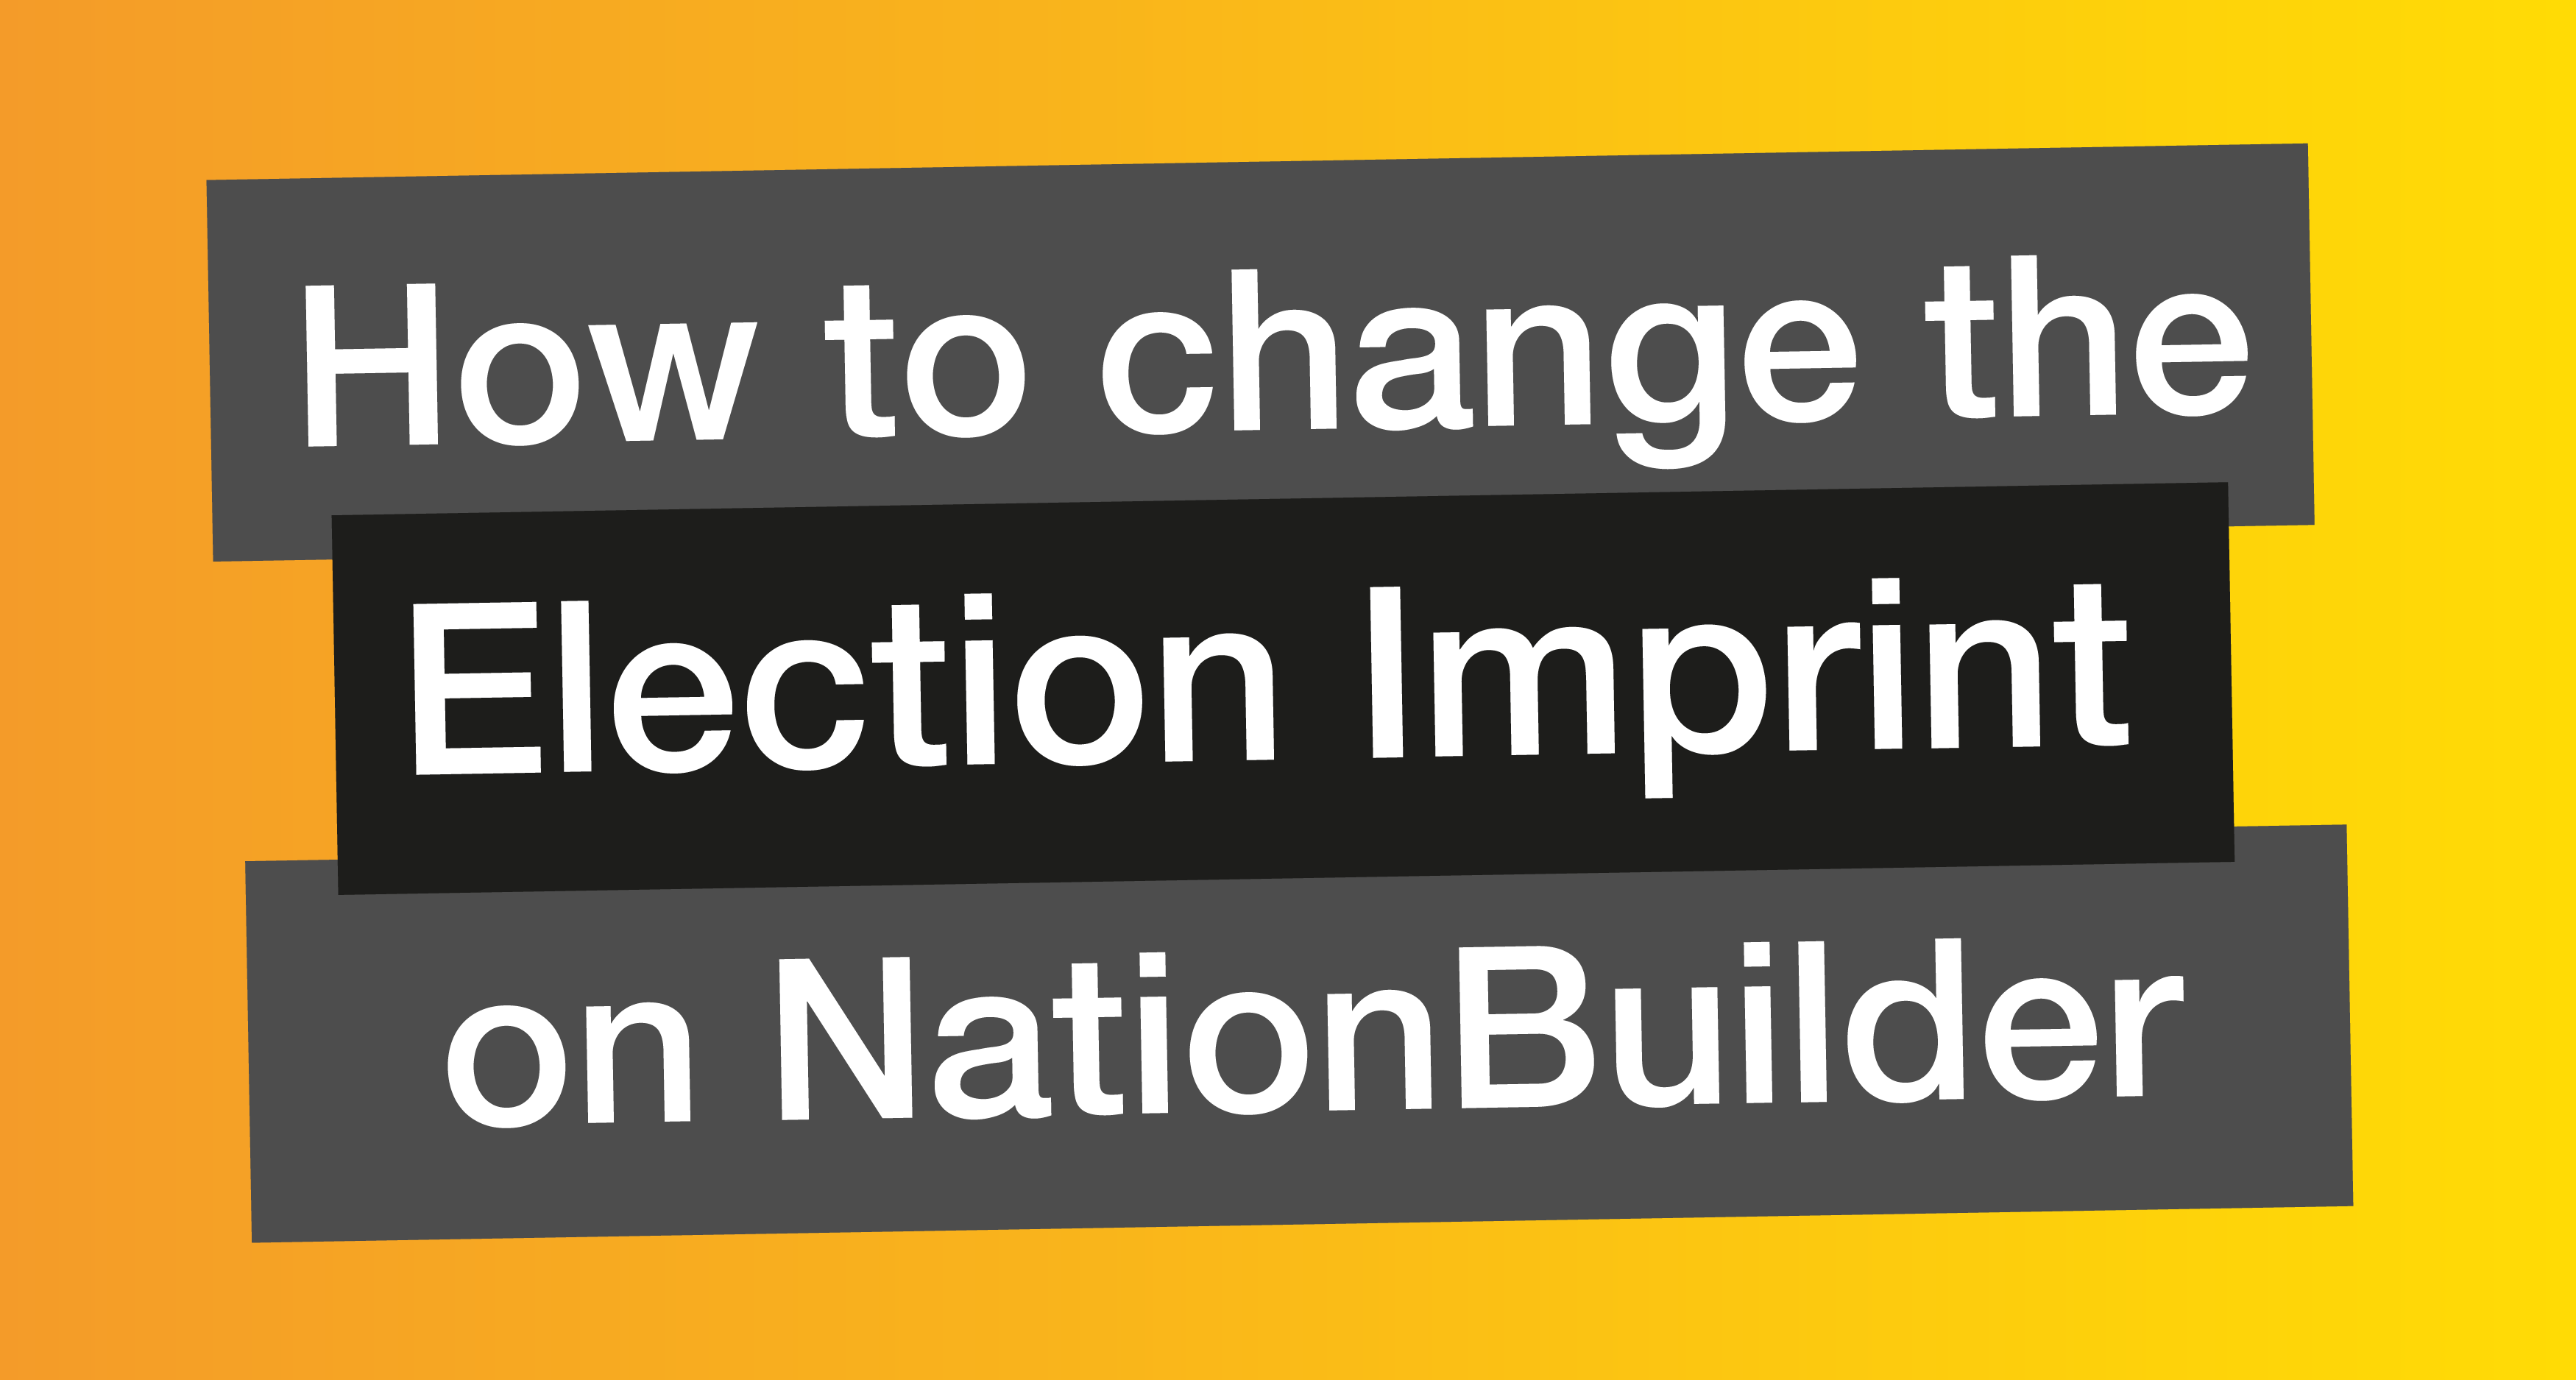 How to Change the Local Imprint on NationBuilder